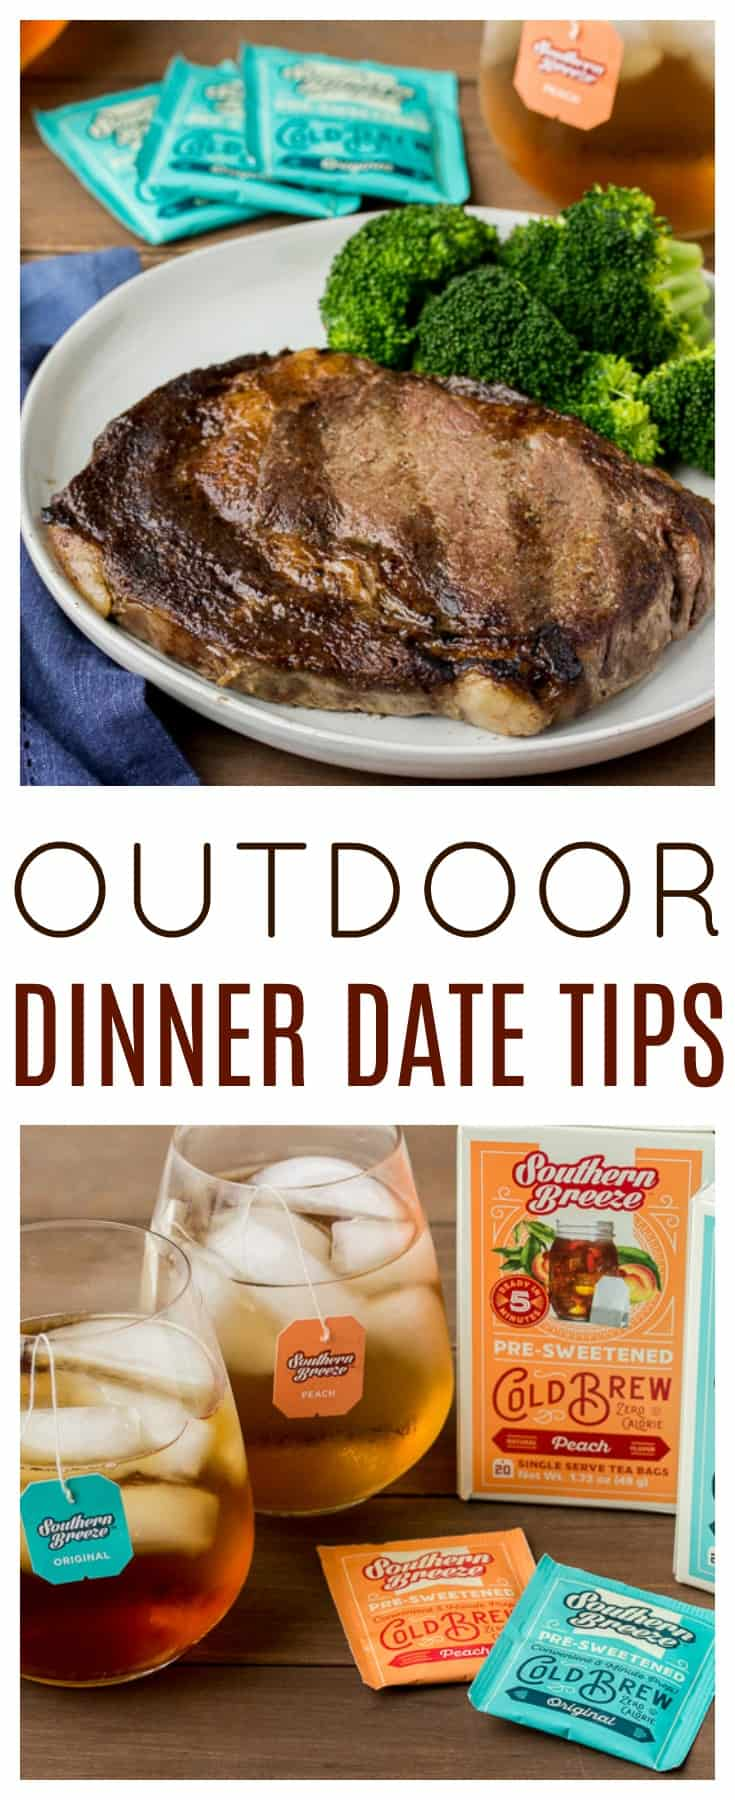 Outdoor Dinner Date Tips - Now that the weather is perfect for grilling outside, making dinner outdoors can be the perfect setting for date night! Here are some outdoor dinner date tips to help the evening be even more special! | #datenight #outdoordinnerideas #summerfood #steak #icedtea